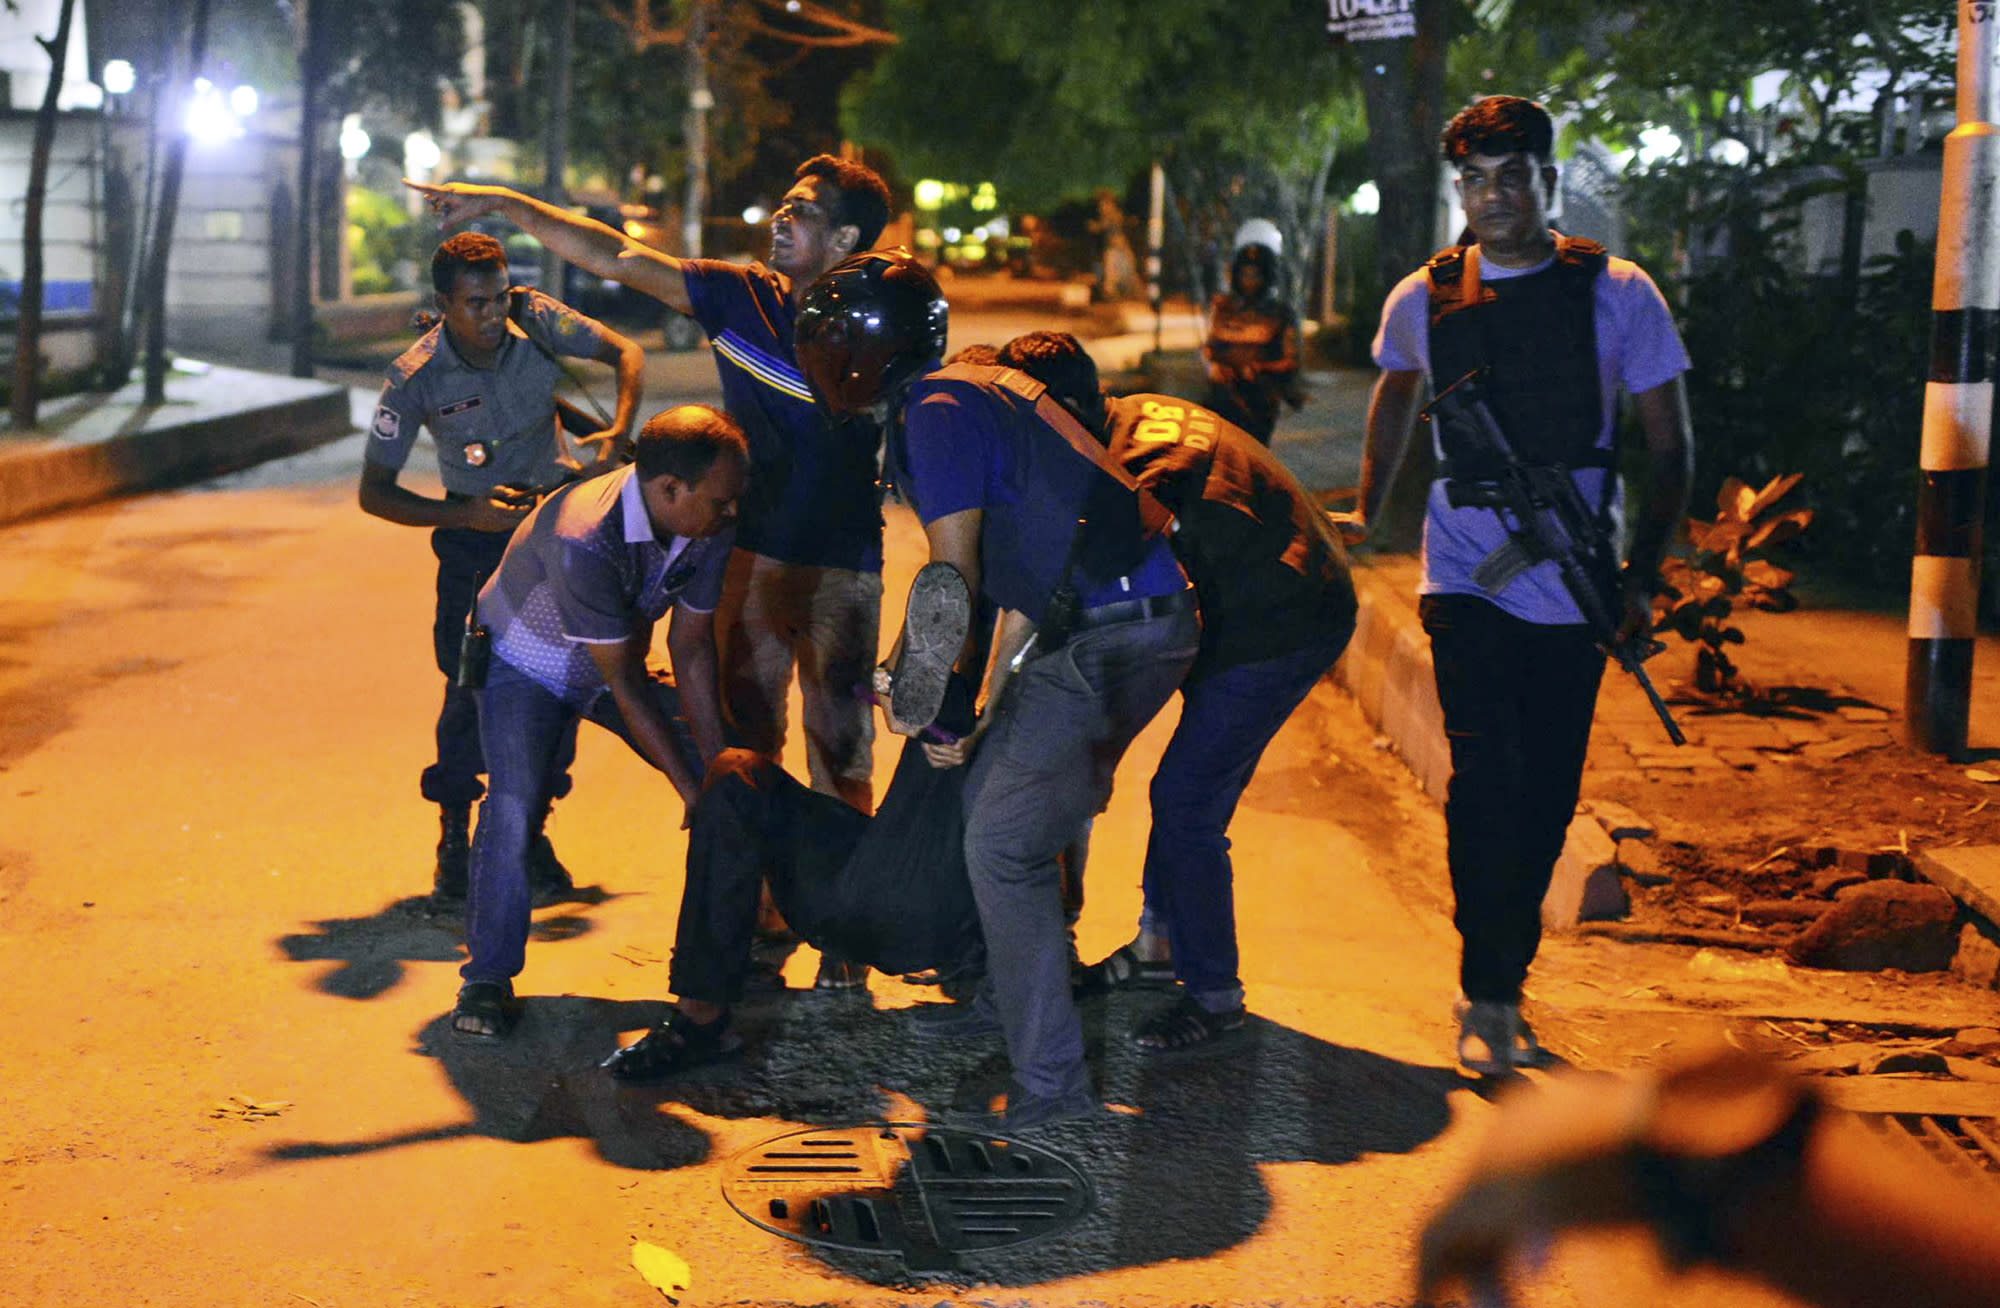 Attackers take hostages at Dhaka restaurant